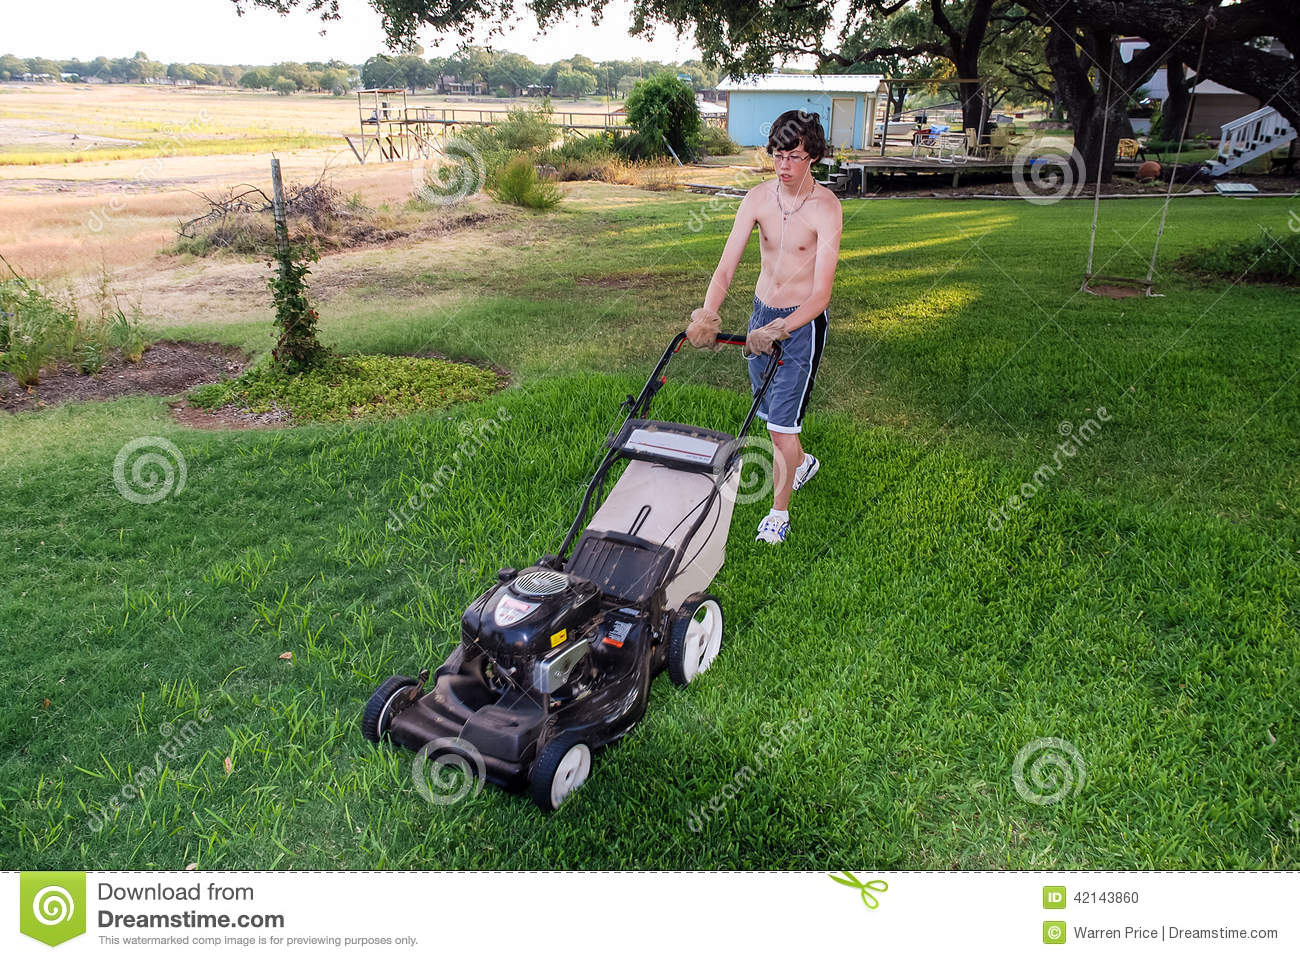 Gallery For gt Teen Mowing Lawn